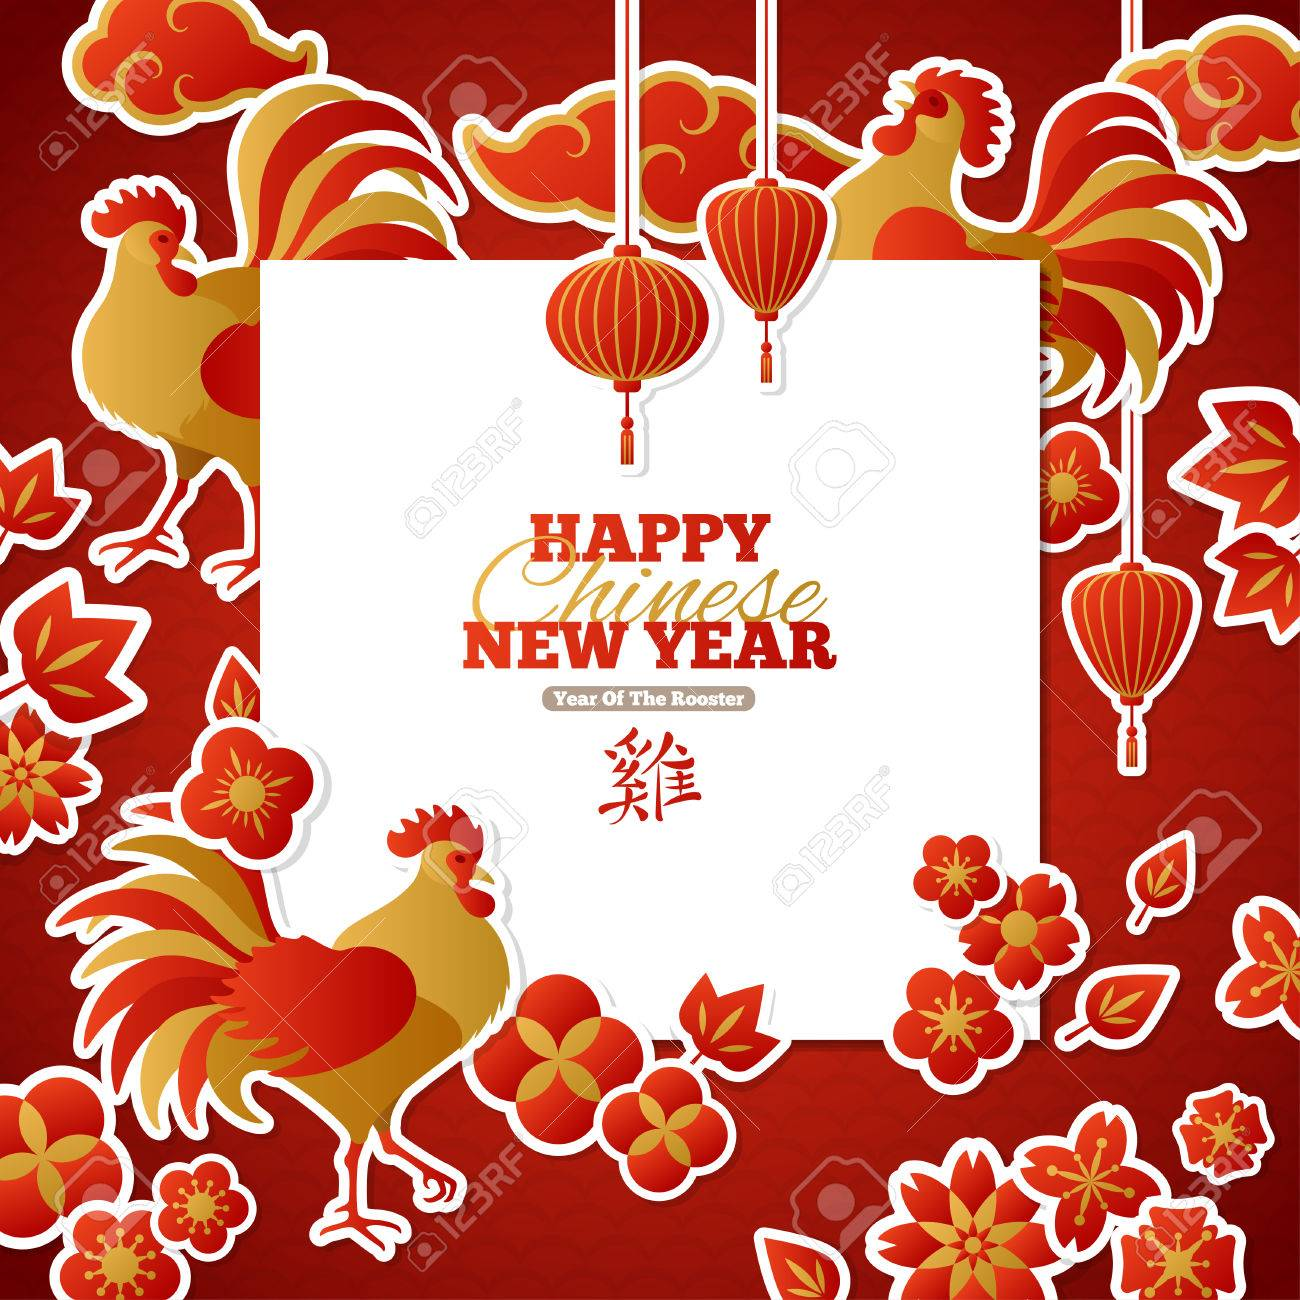 2017 Chinese New Year Greeting Card. Royalty Free Cliparts, Vectors ...